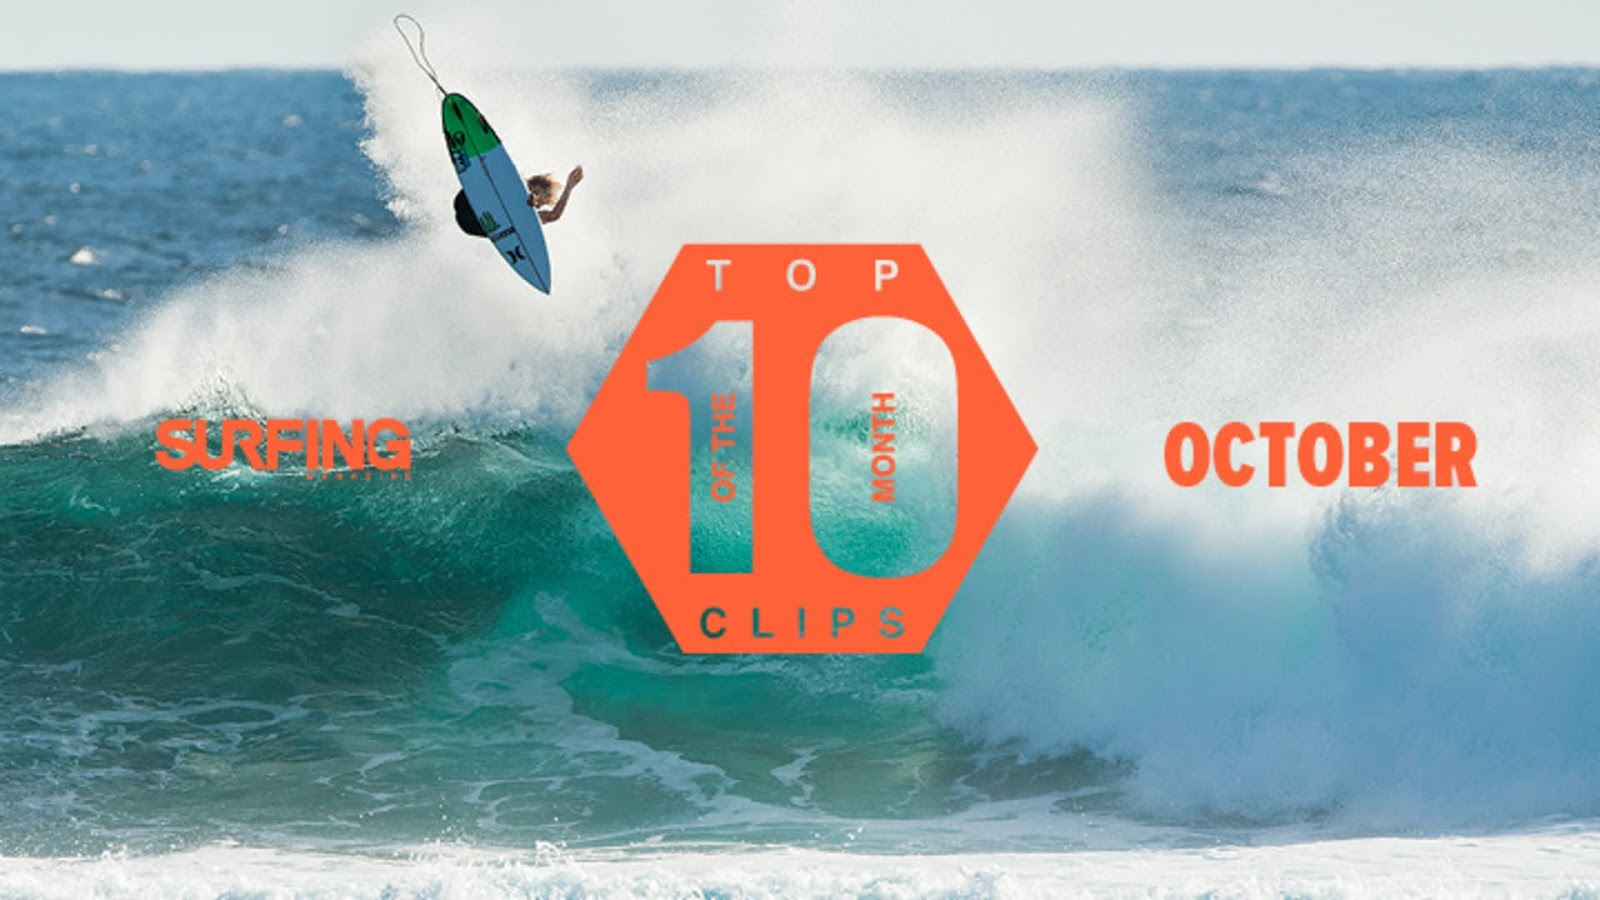 October Top 10 Surfing